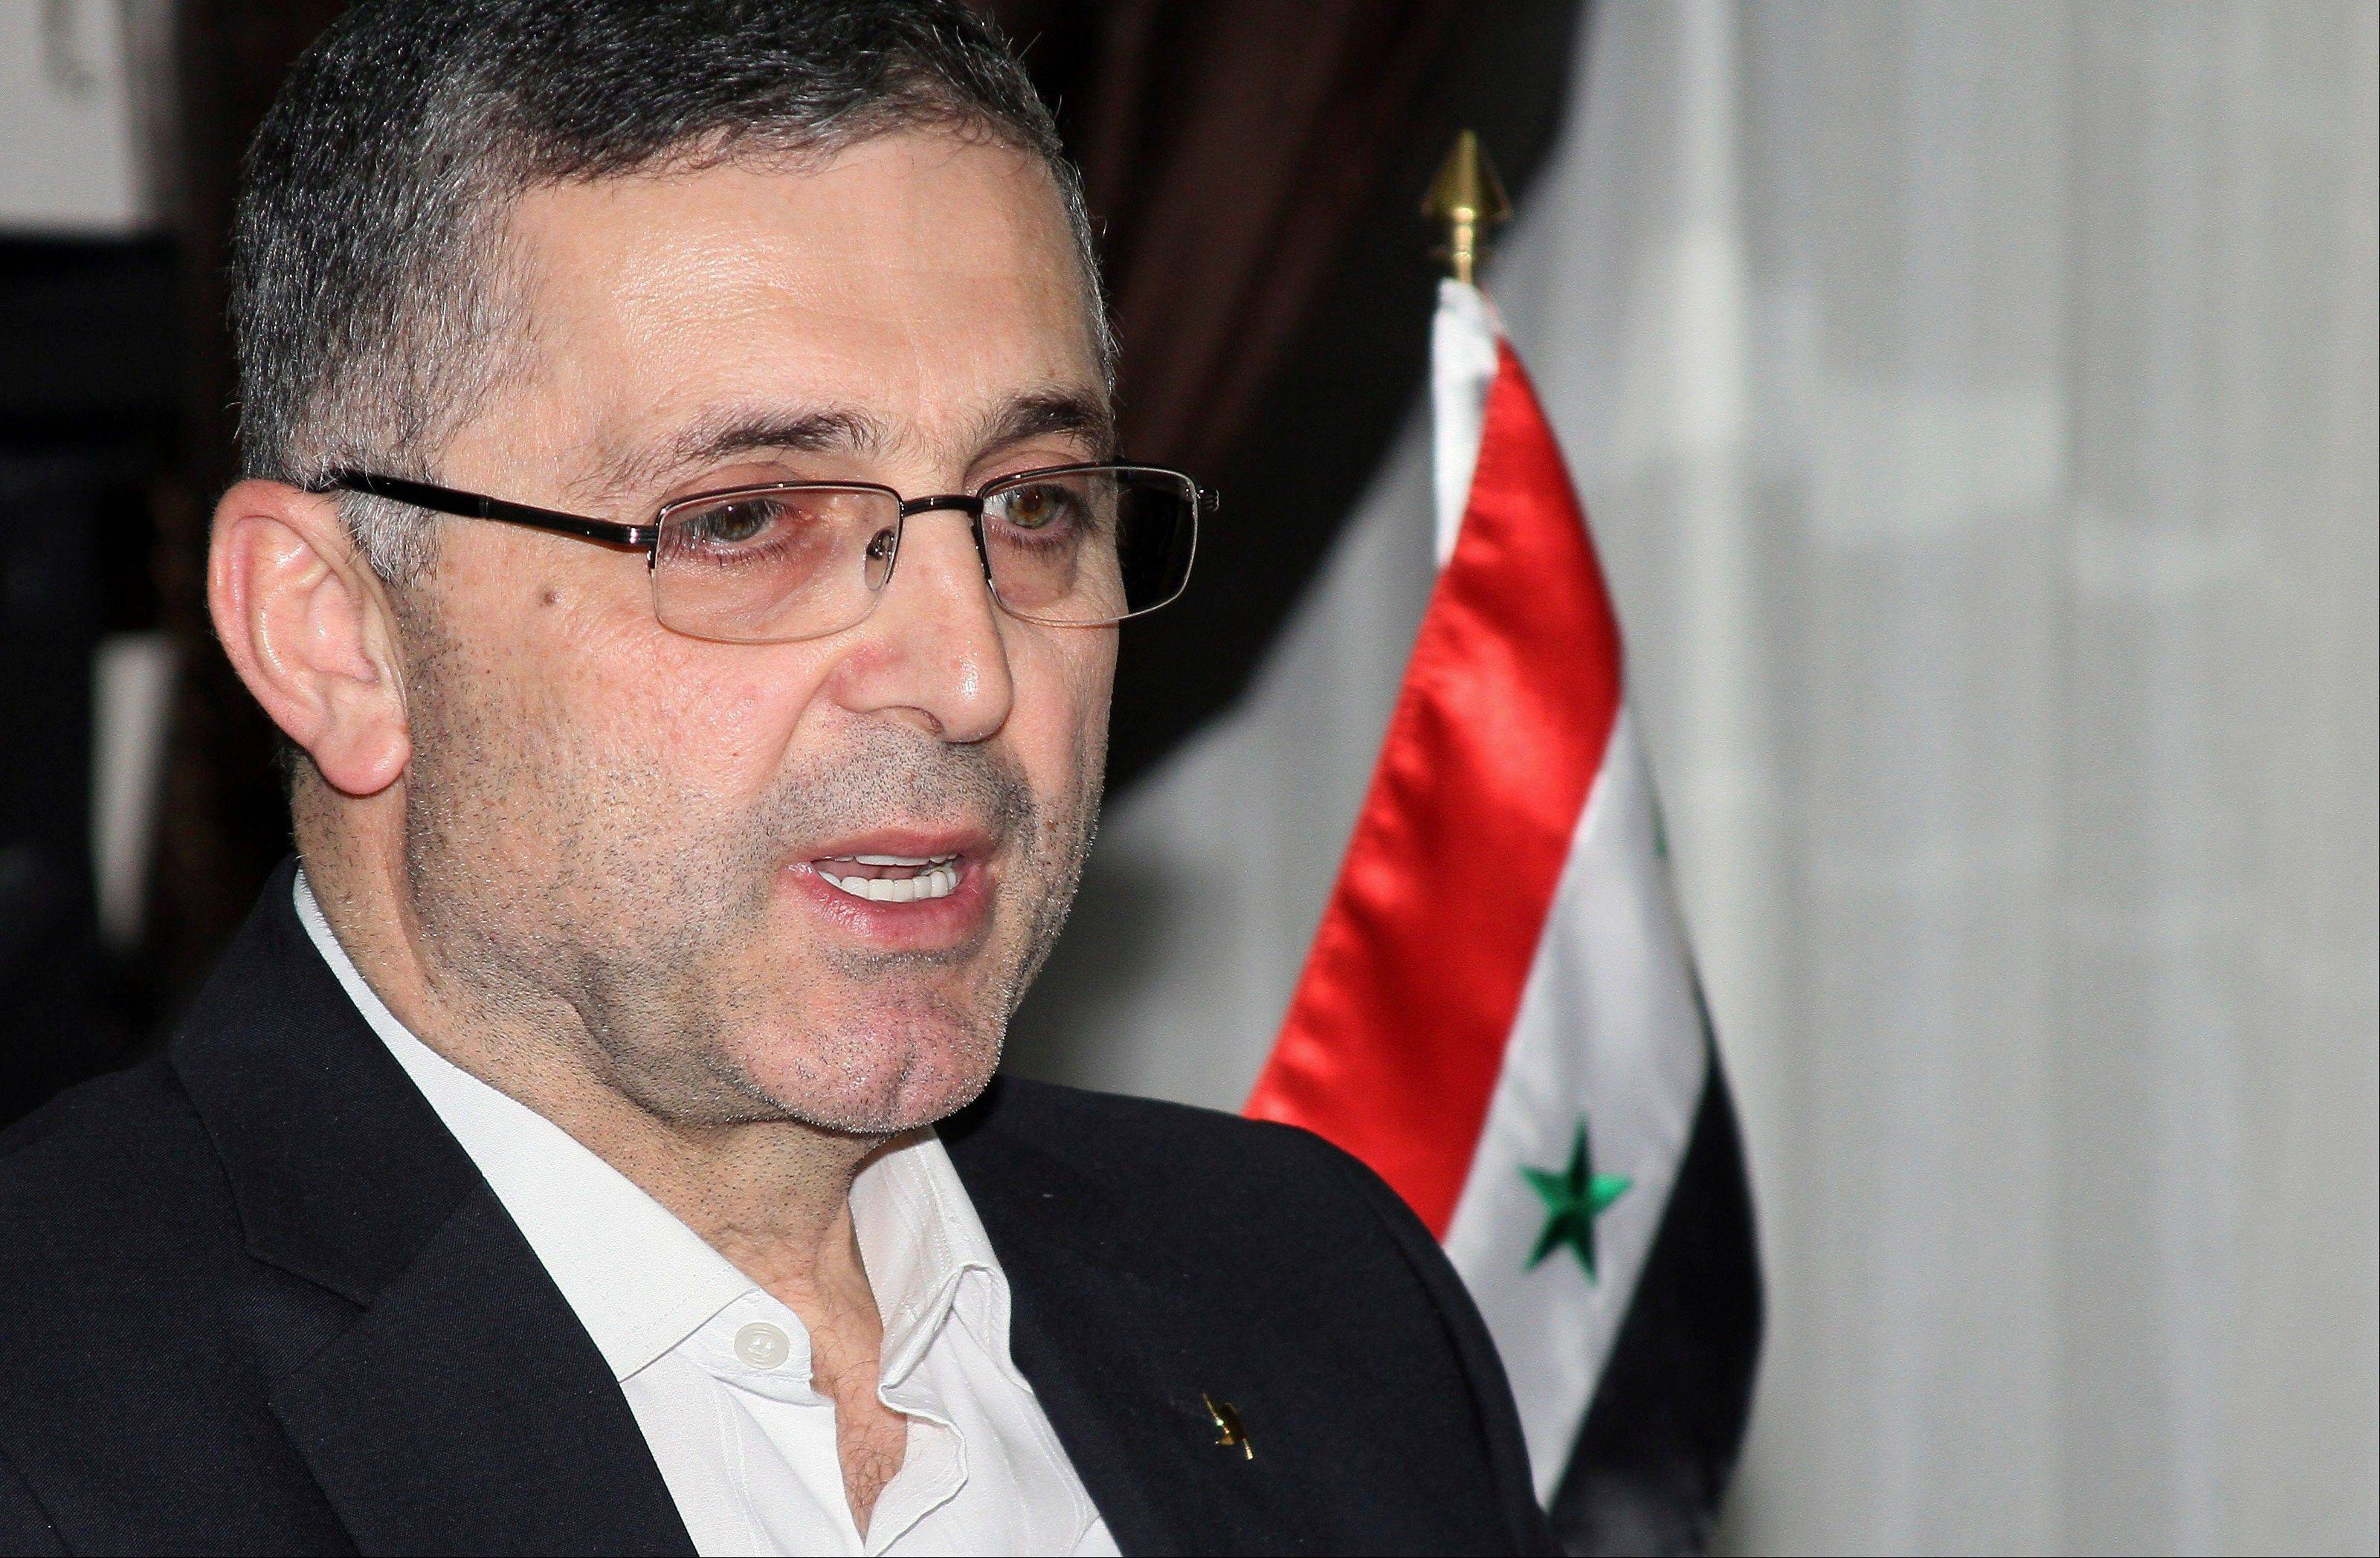 Ali Haidar, the Syrian Minister for Reconciliation Affairs, said Syria�s acceptance of a Russian initiative to relinquish its chemical weapons is a sign of strength and that by agreeing to the proposal, Syria has taken away one of the pretexts for war against Syria although he says the threat of foreign military action remains.